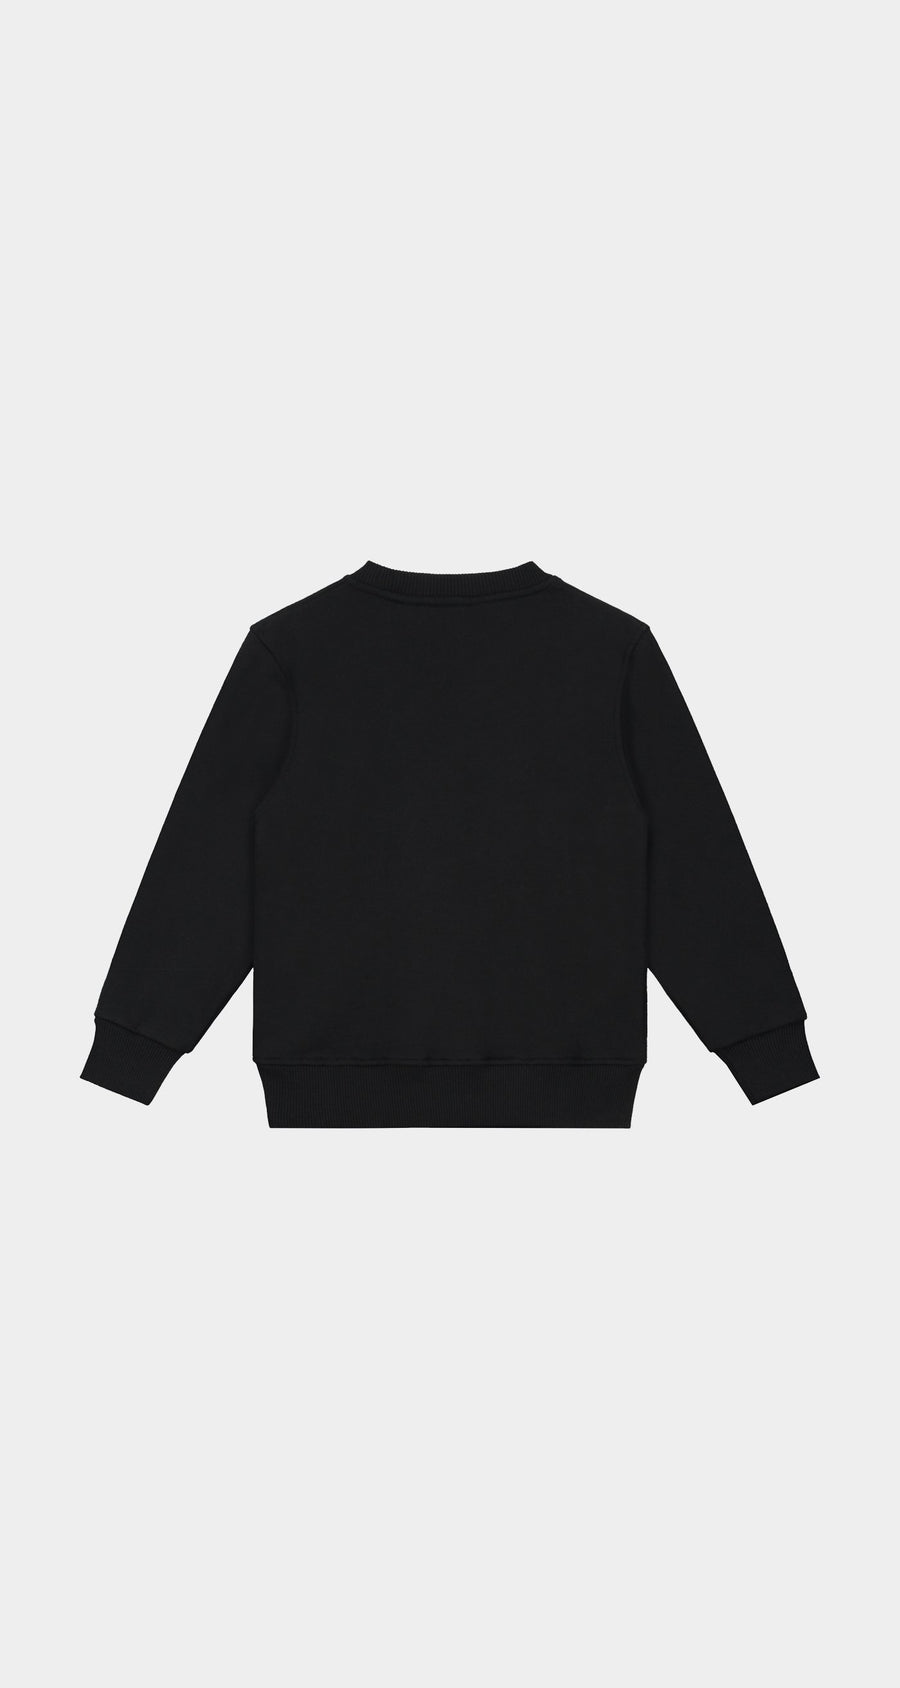 Daily Paper - Black Kids Alias Sweater NEW - Rear